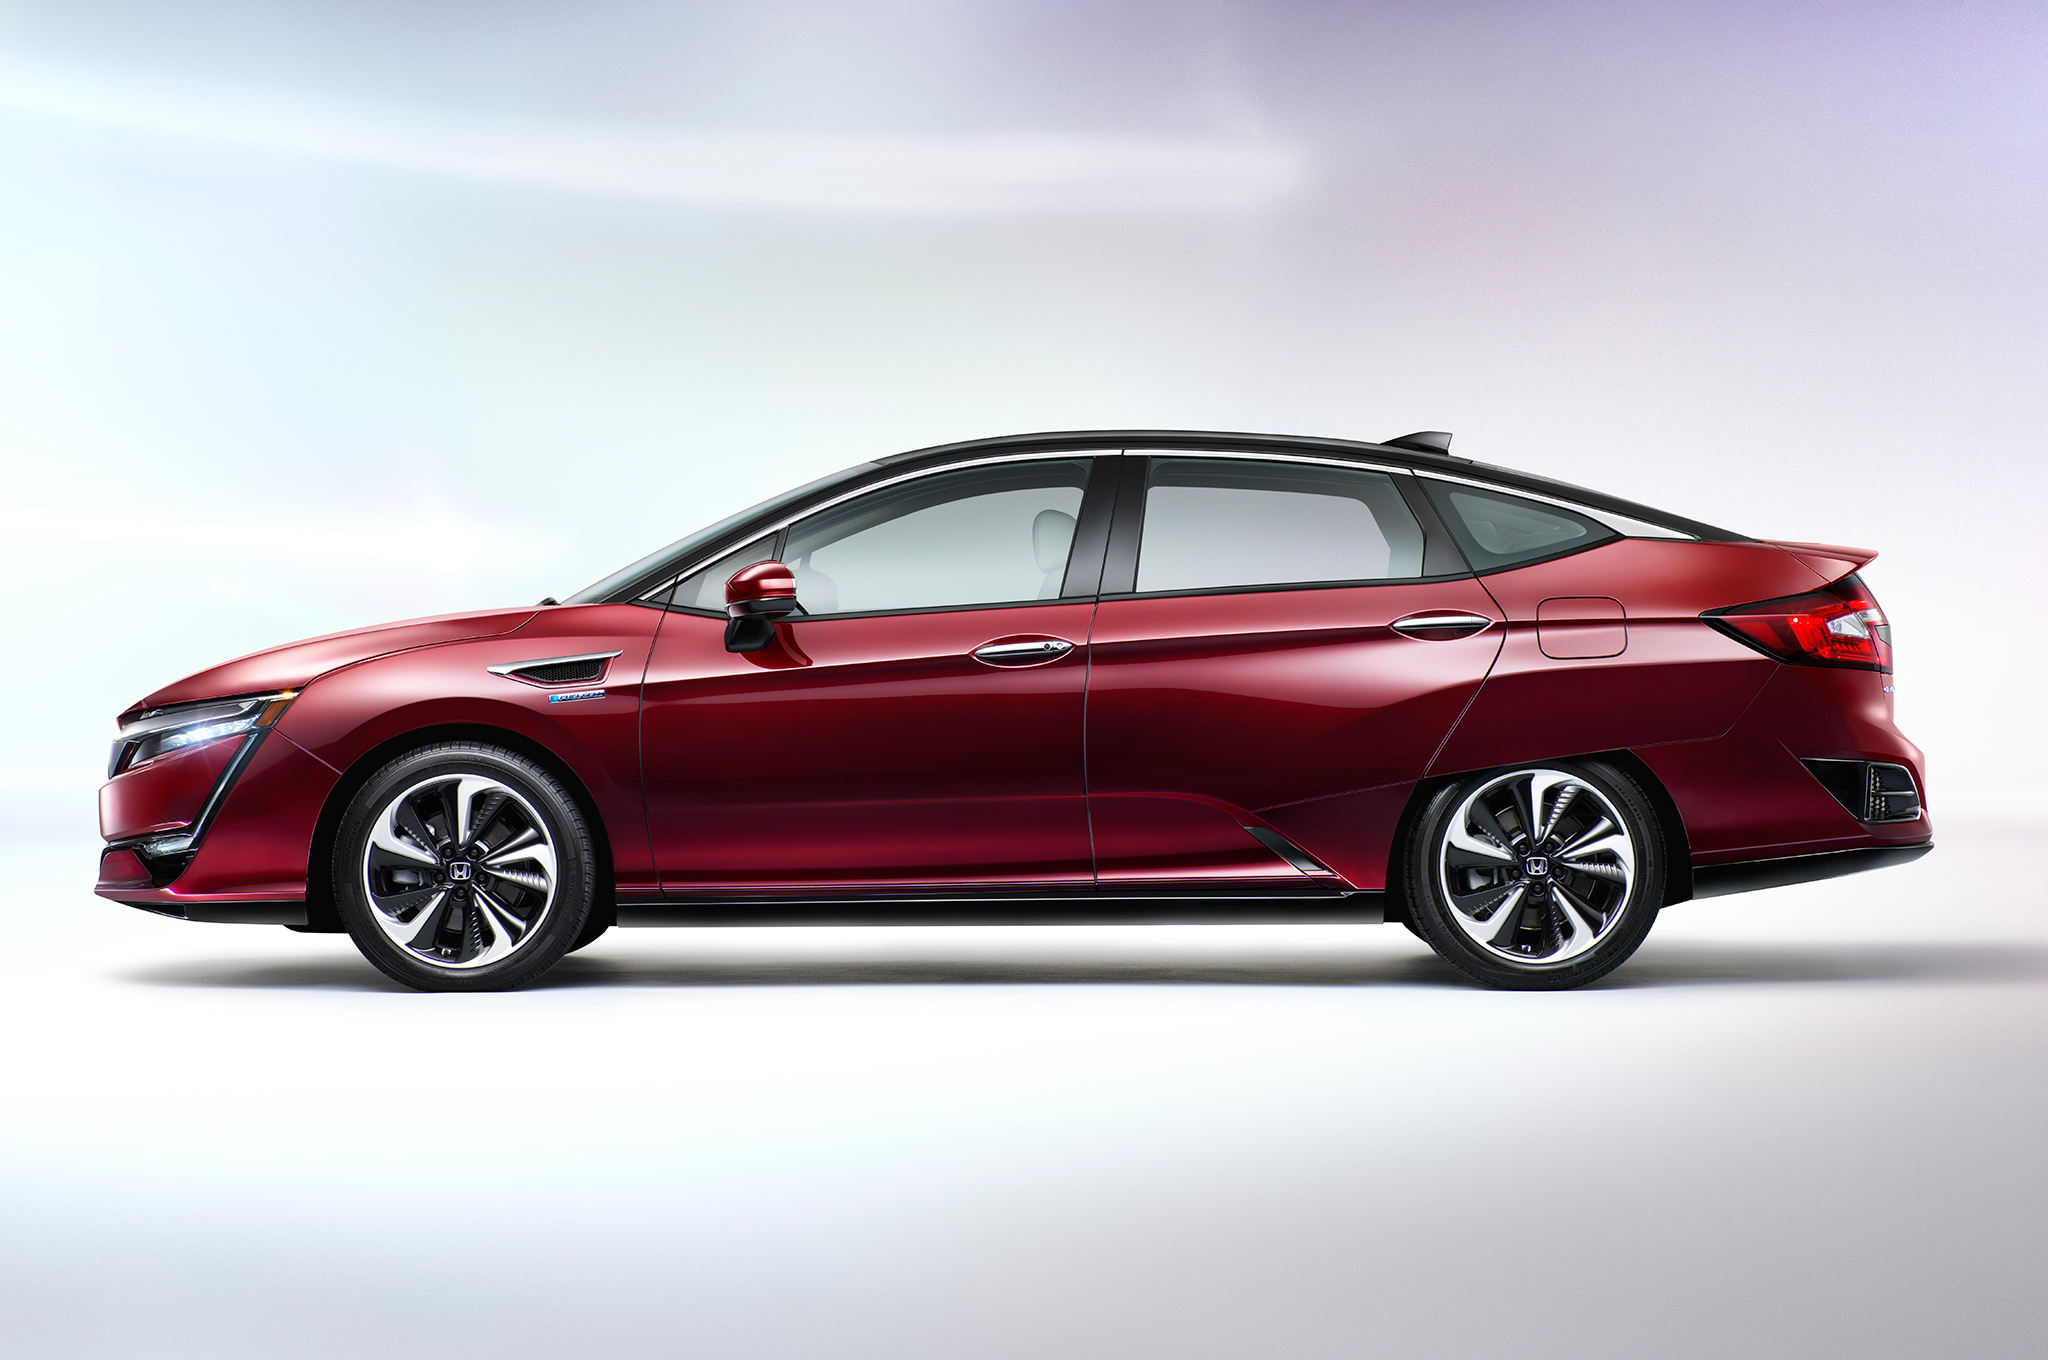 2018 honda clarity plug in hybrid has 47 miles electric range suv news and analysis. Black Bedroom Furniture Sets. Home Design Ideas